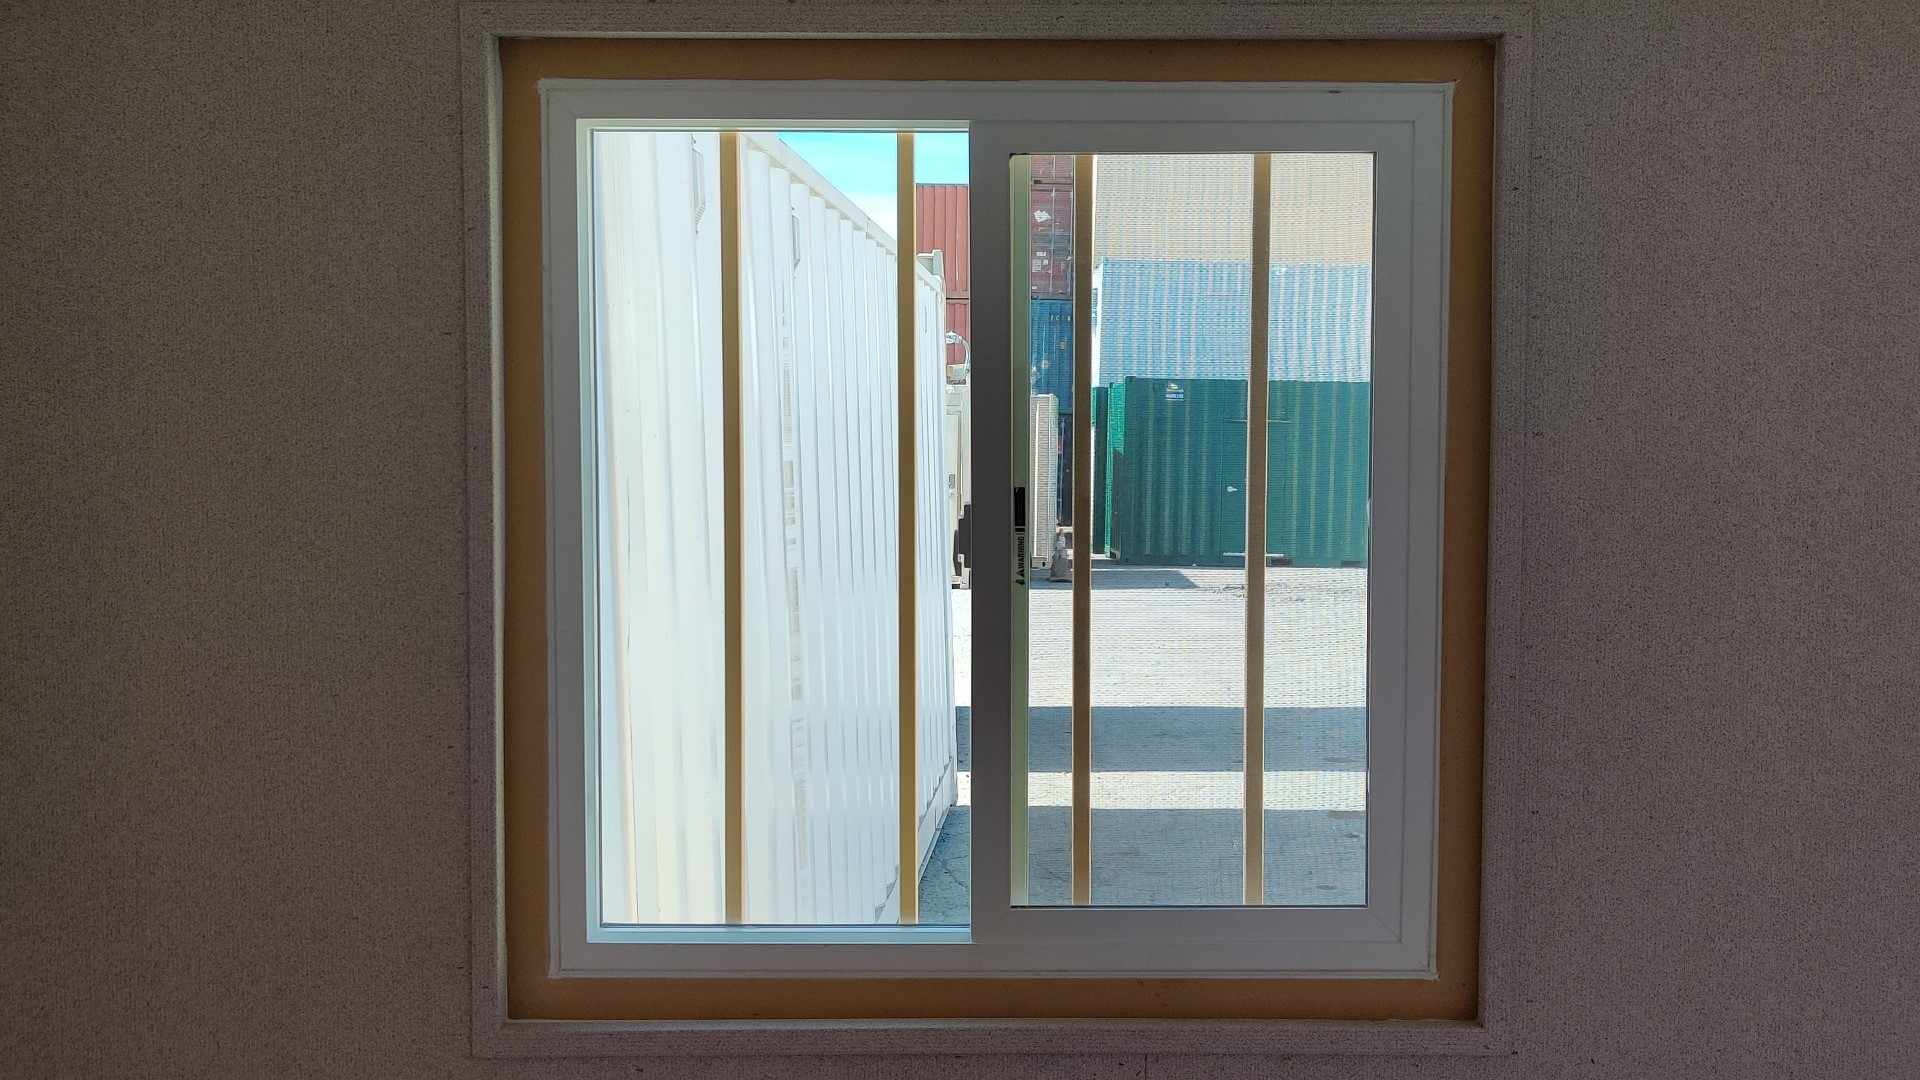 3ftx3ft double pane sliding window for shipping container for sale